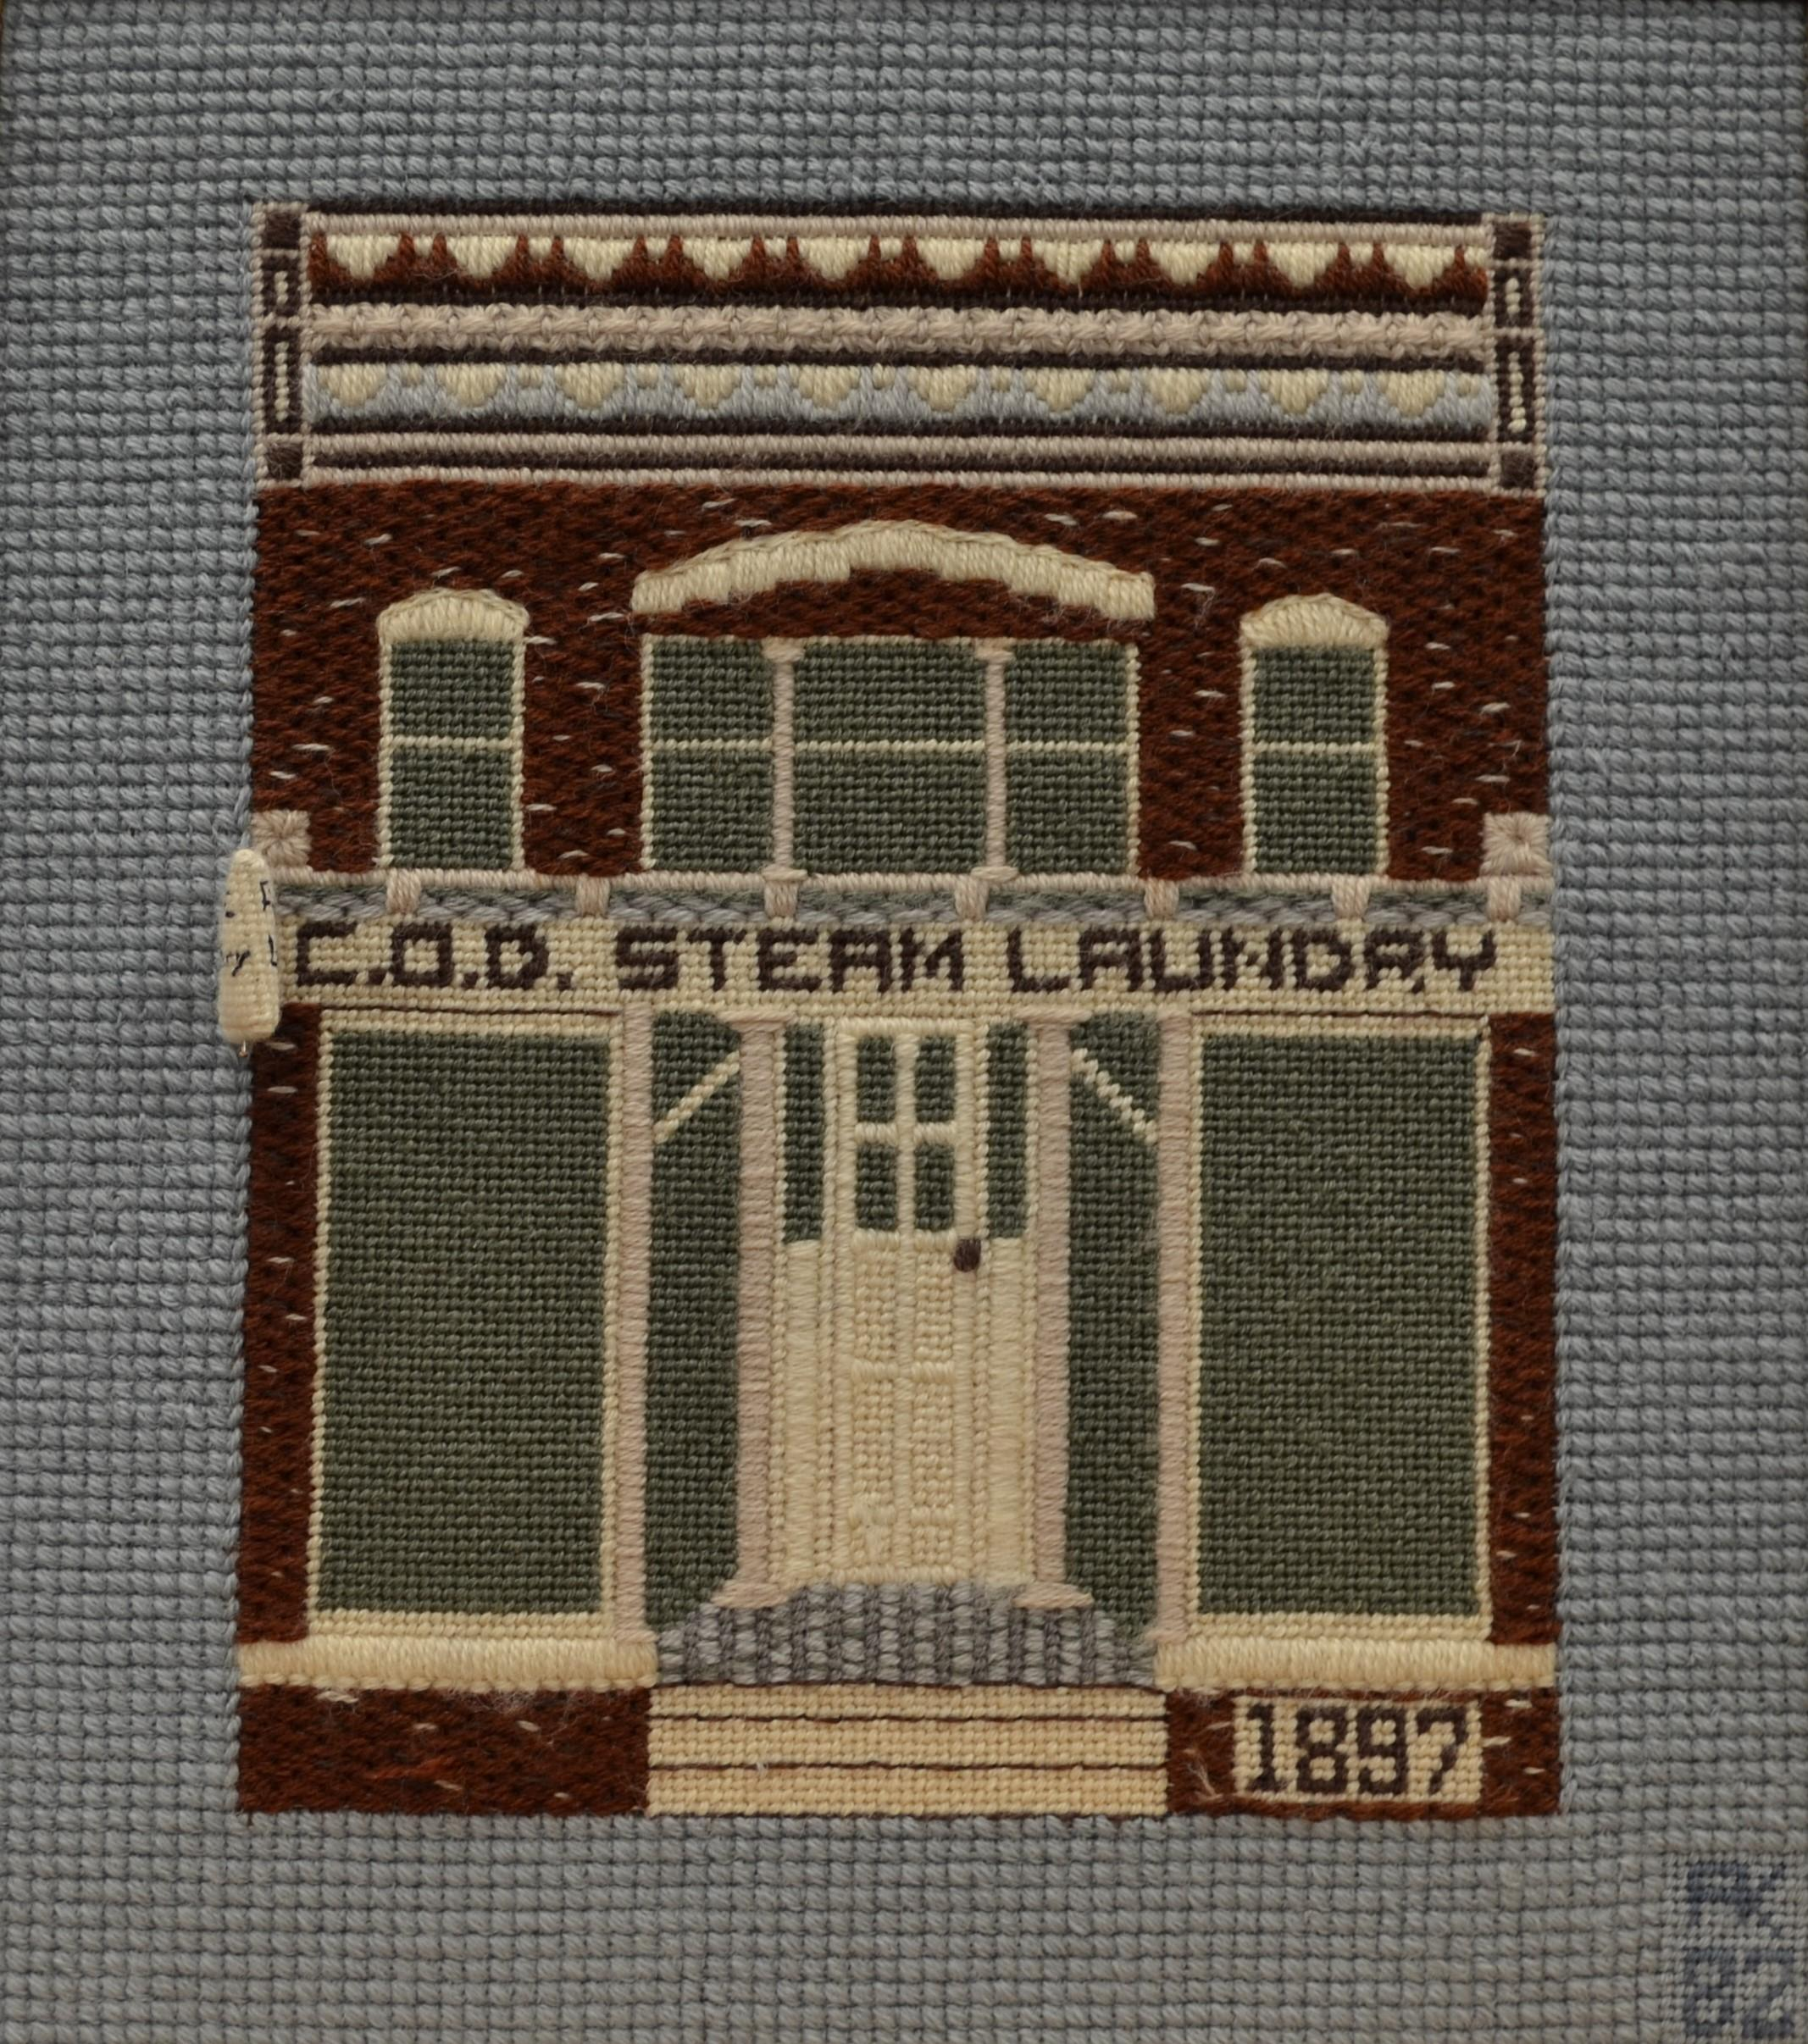 Needlepoint of the COD Steam building